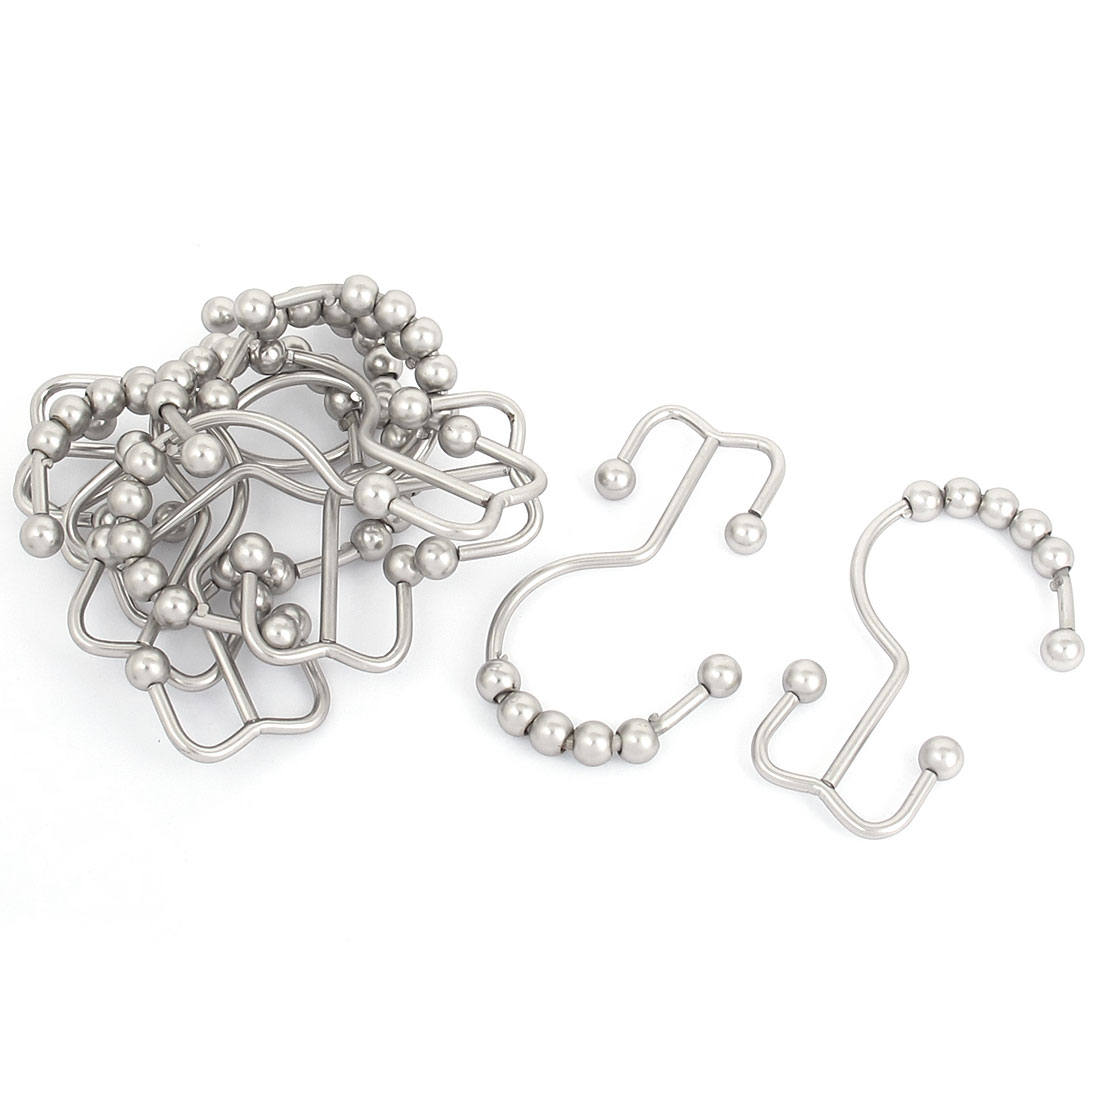 Metal Ball Bead Double Glide Shower Bathroom Curtain Ring Hooks 10pcs